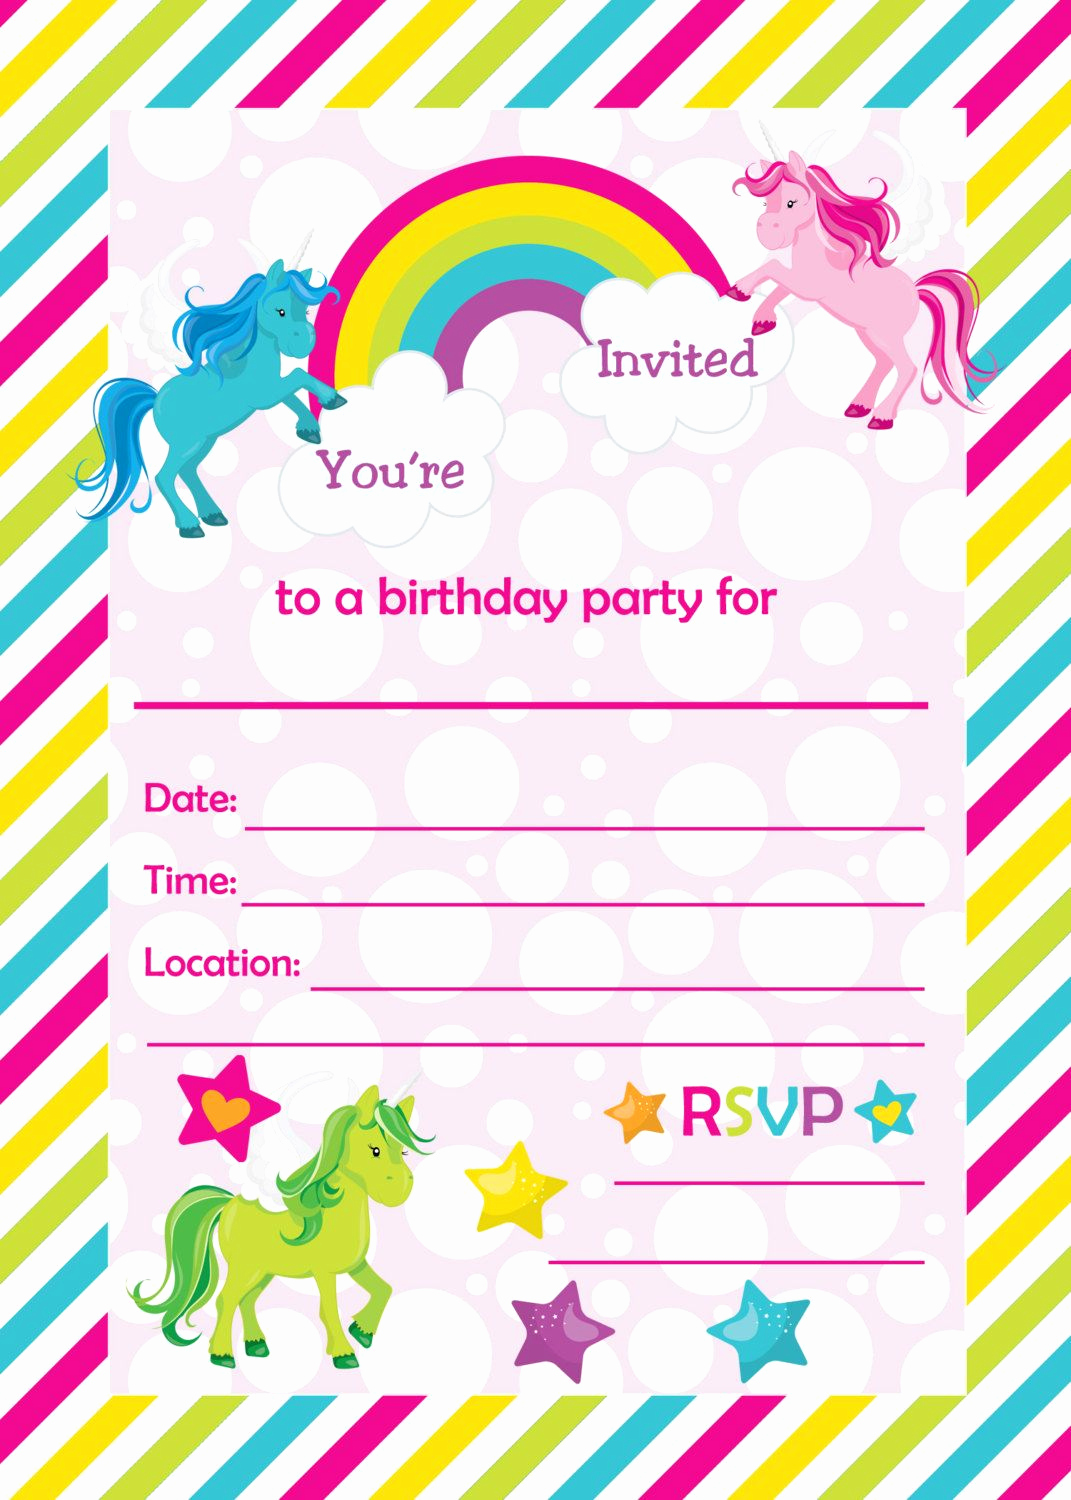 Printable Birthday Invitation Cards Awesome Fill In Birthday Party Invitations Printable Rainbows and